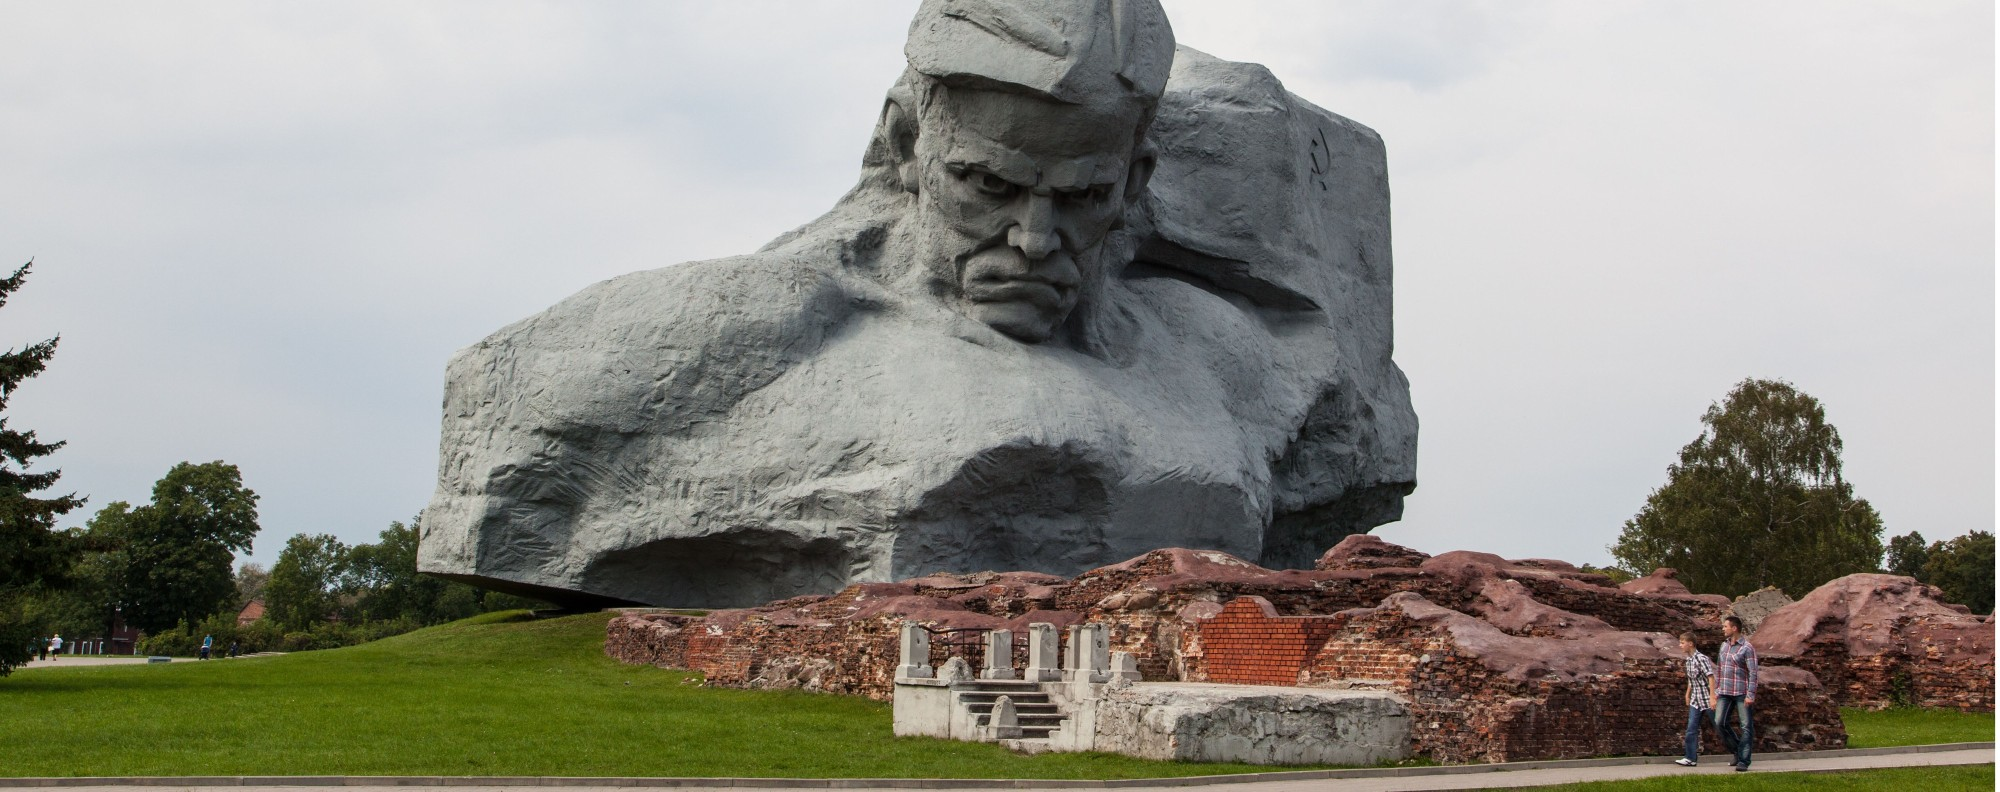 The Courage monument at Brest Fortress in Belarus. Picture: Alamy